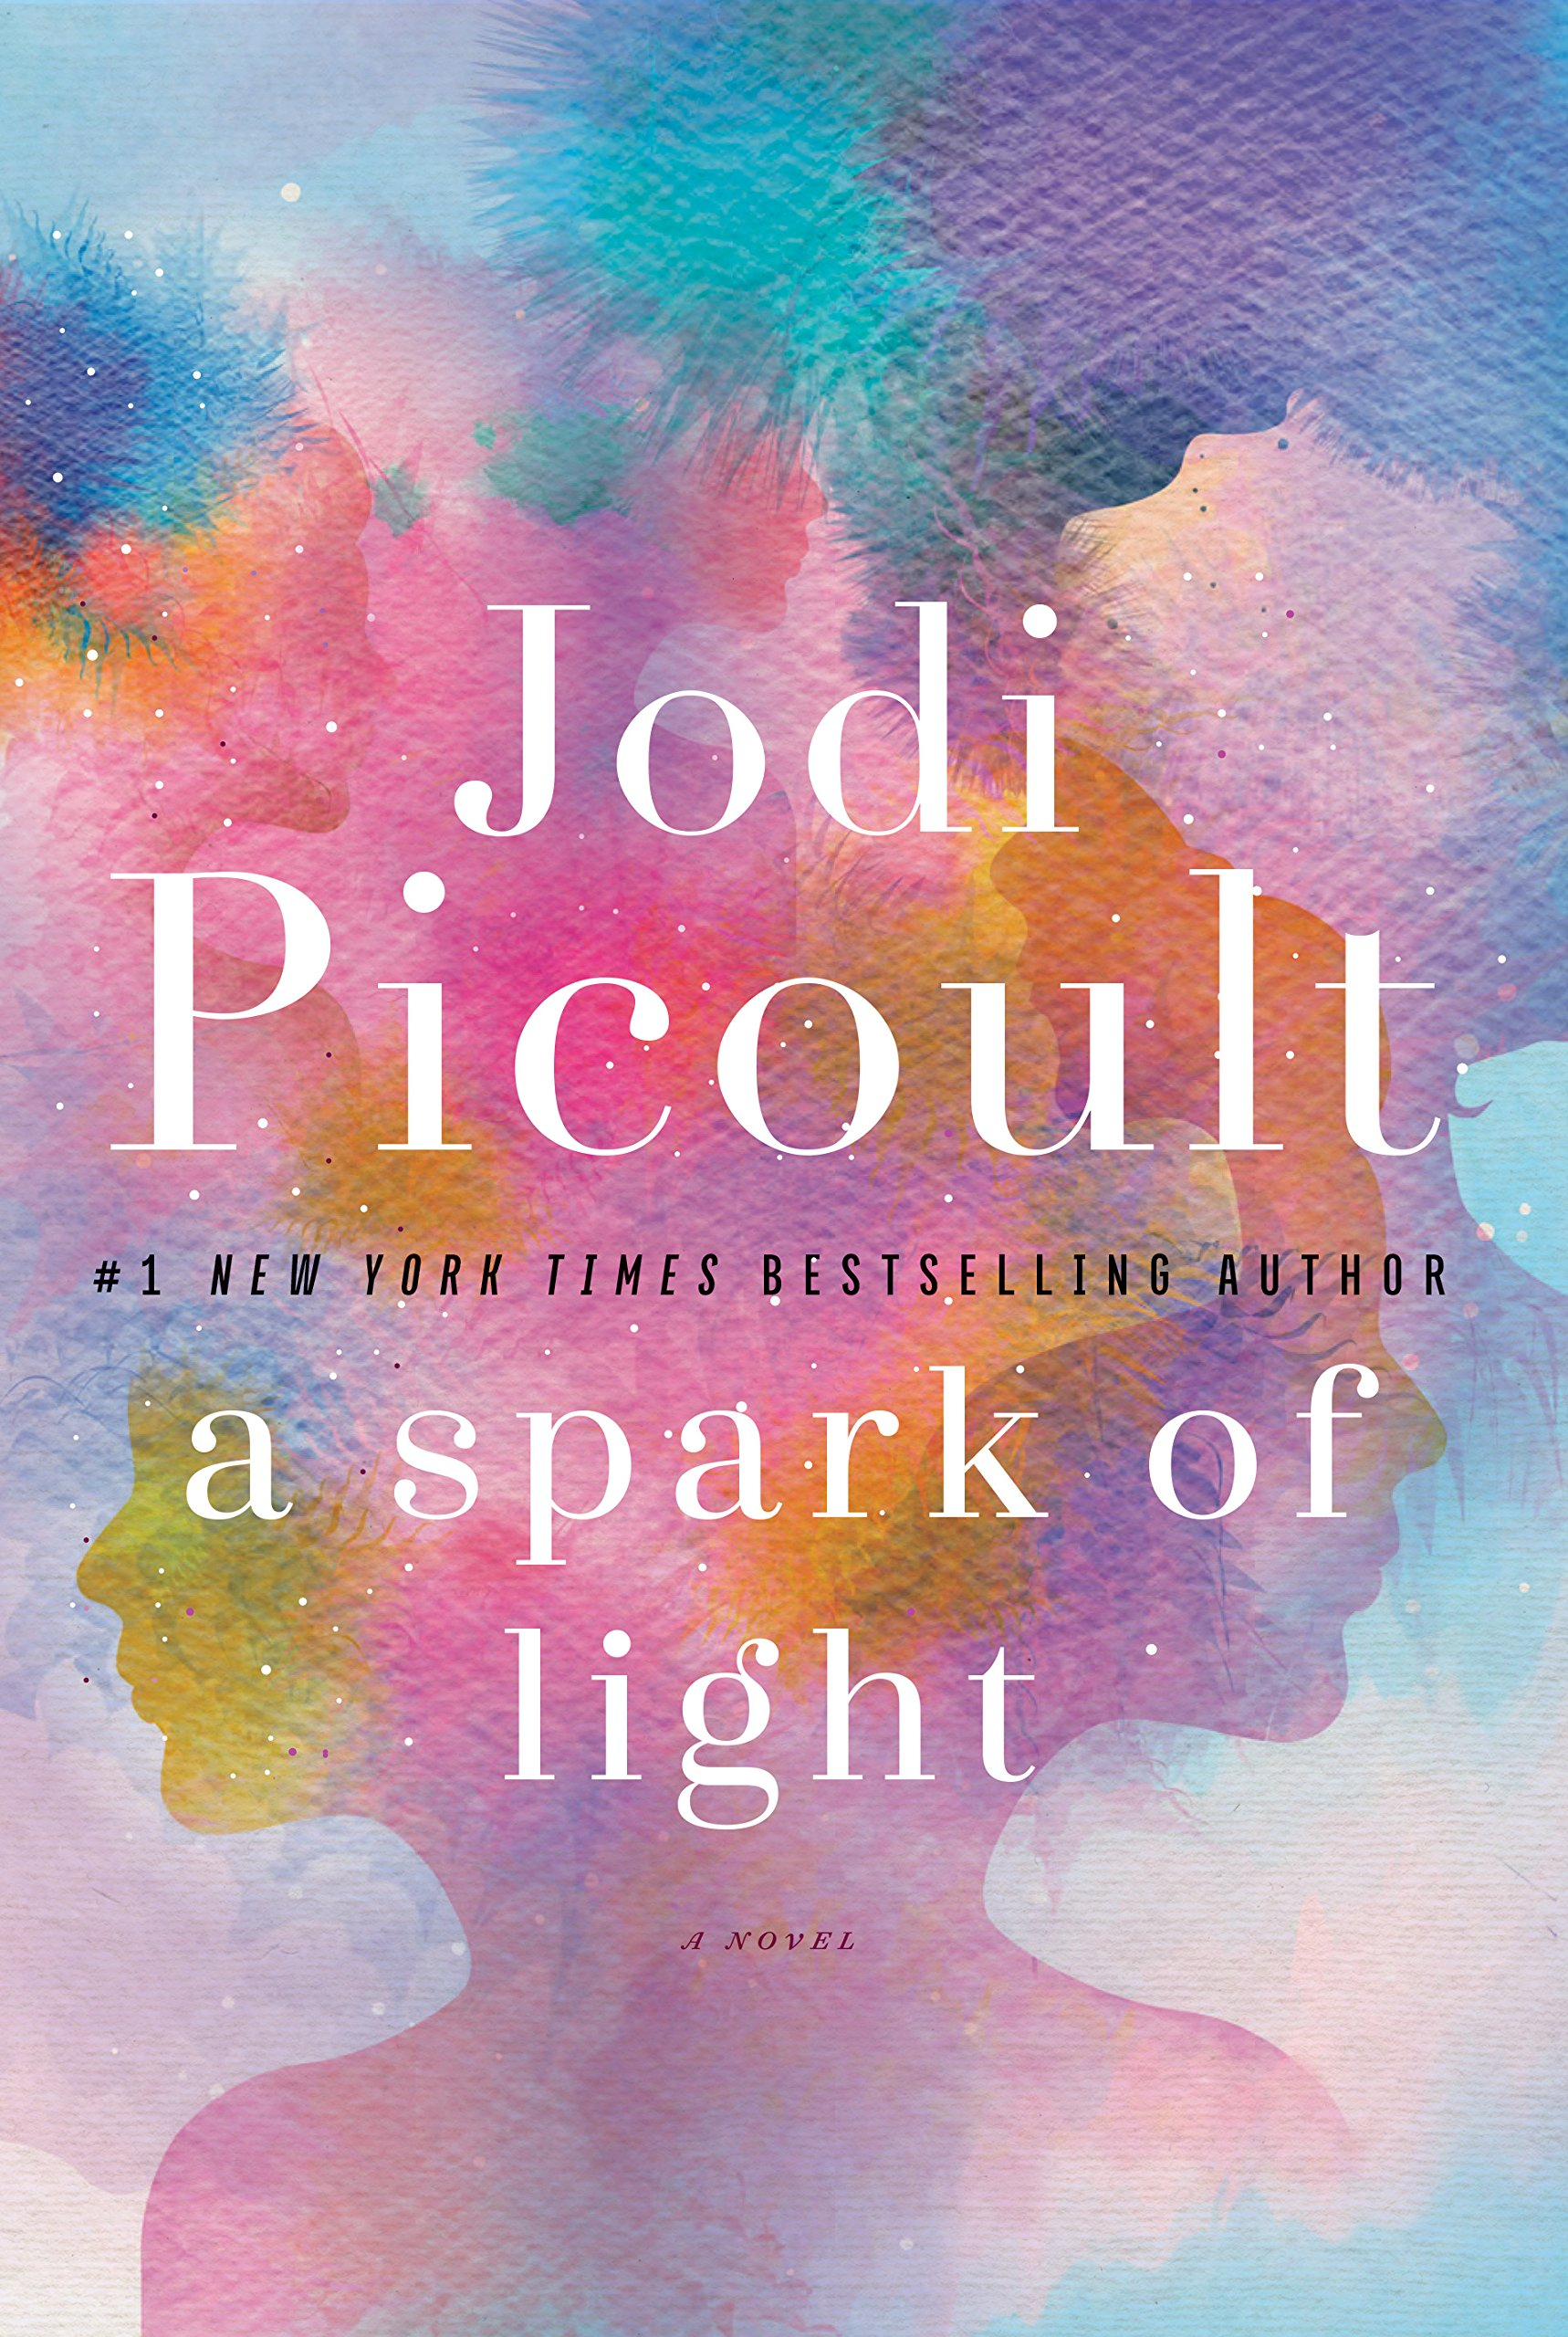 Image result for a spark of light book cover